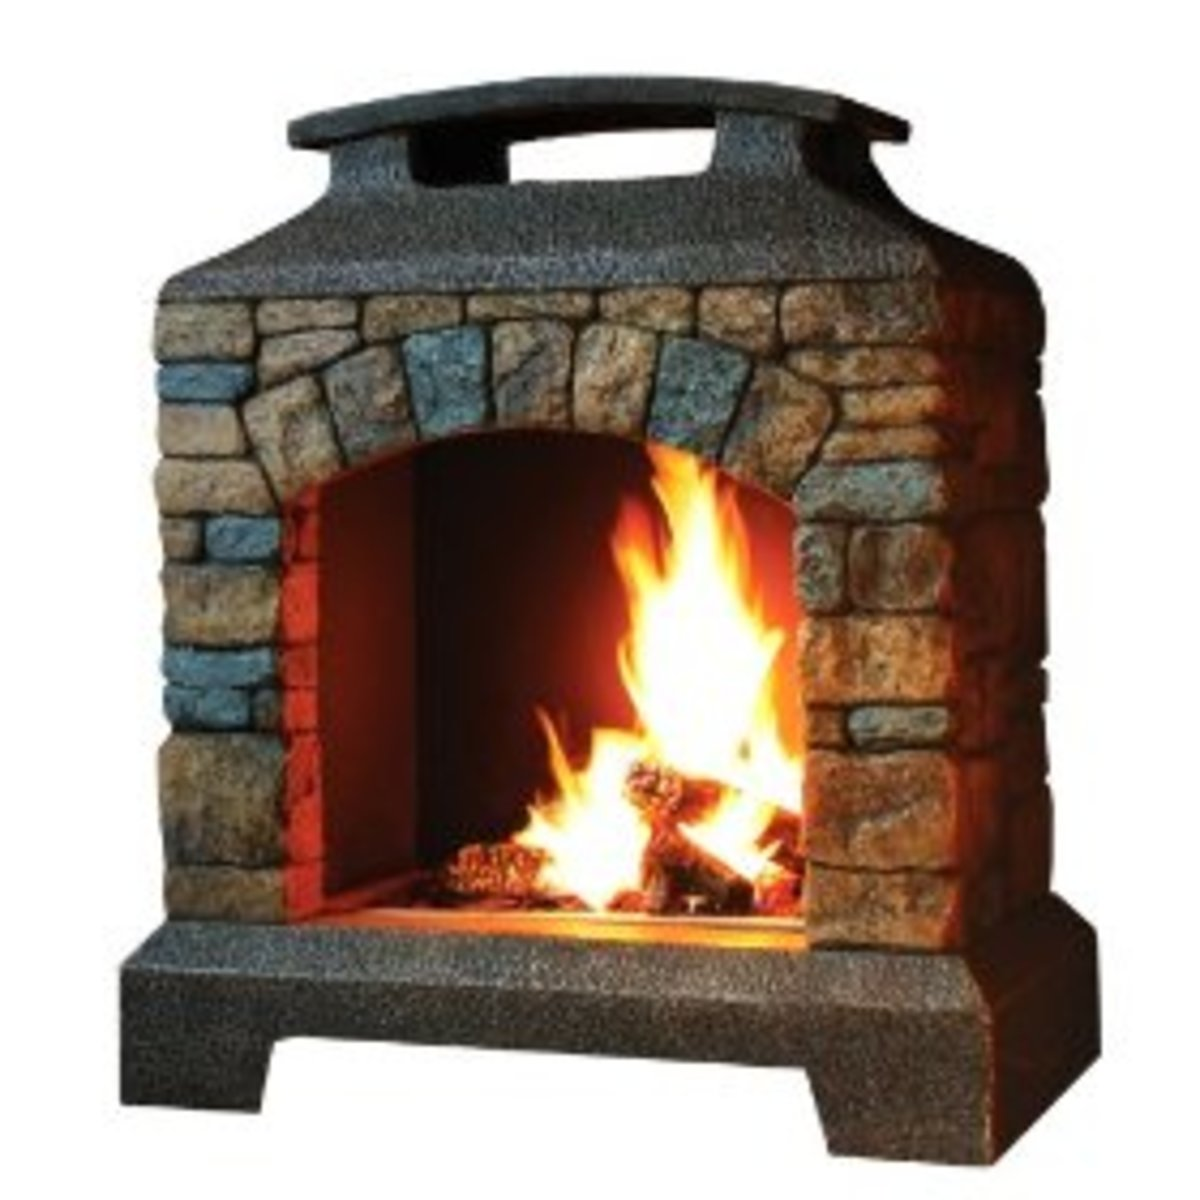 Freestanding Propane Stove - Compare Prices, Reviews and Buy at